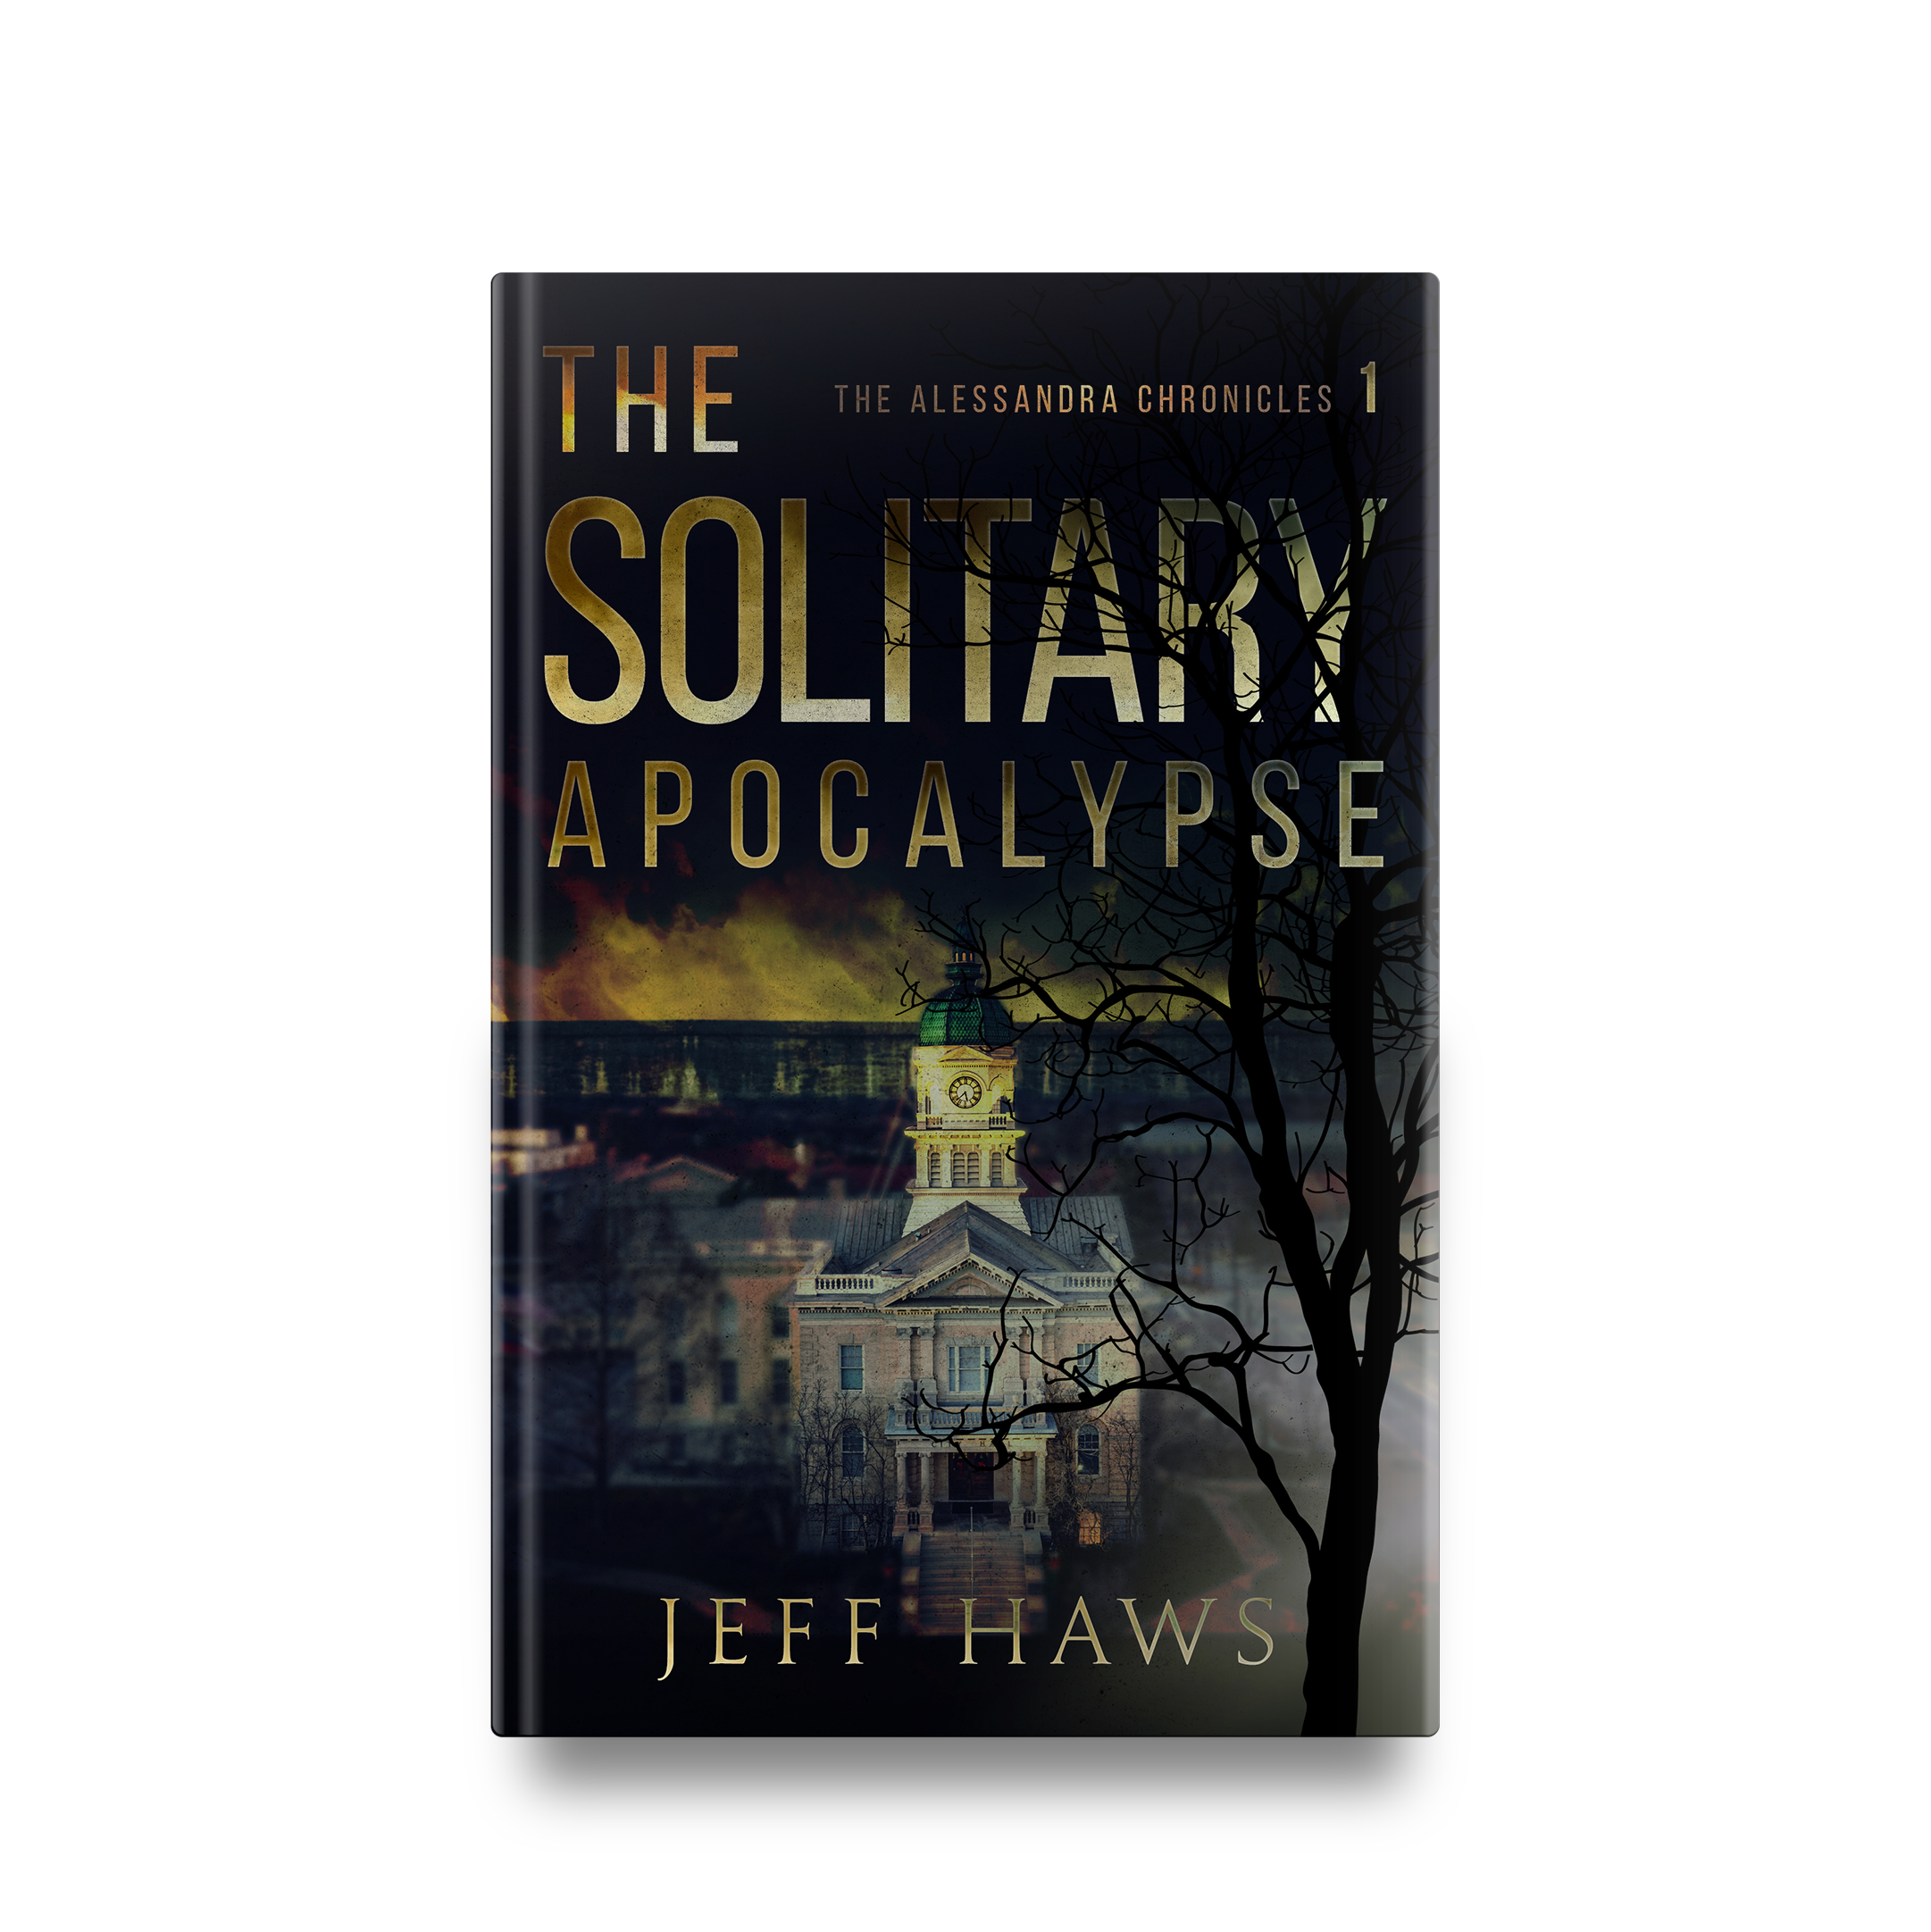 Jeff Haws' The Solitary Apocalpyse || Designed by TheThatchery.com